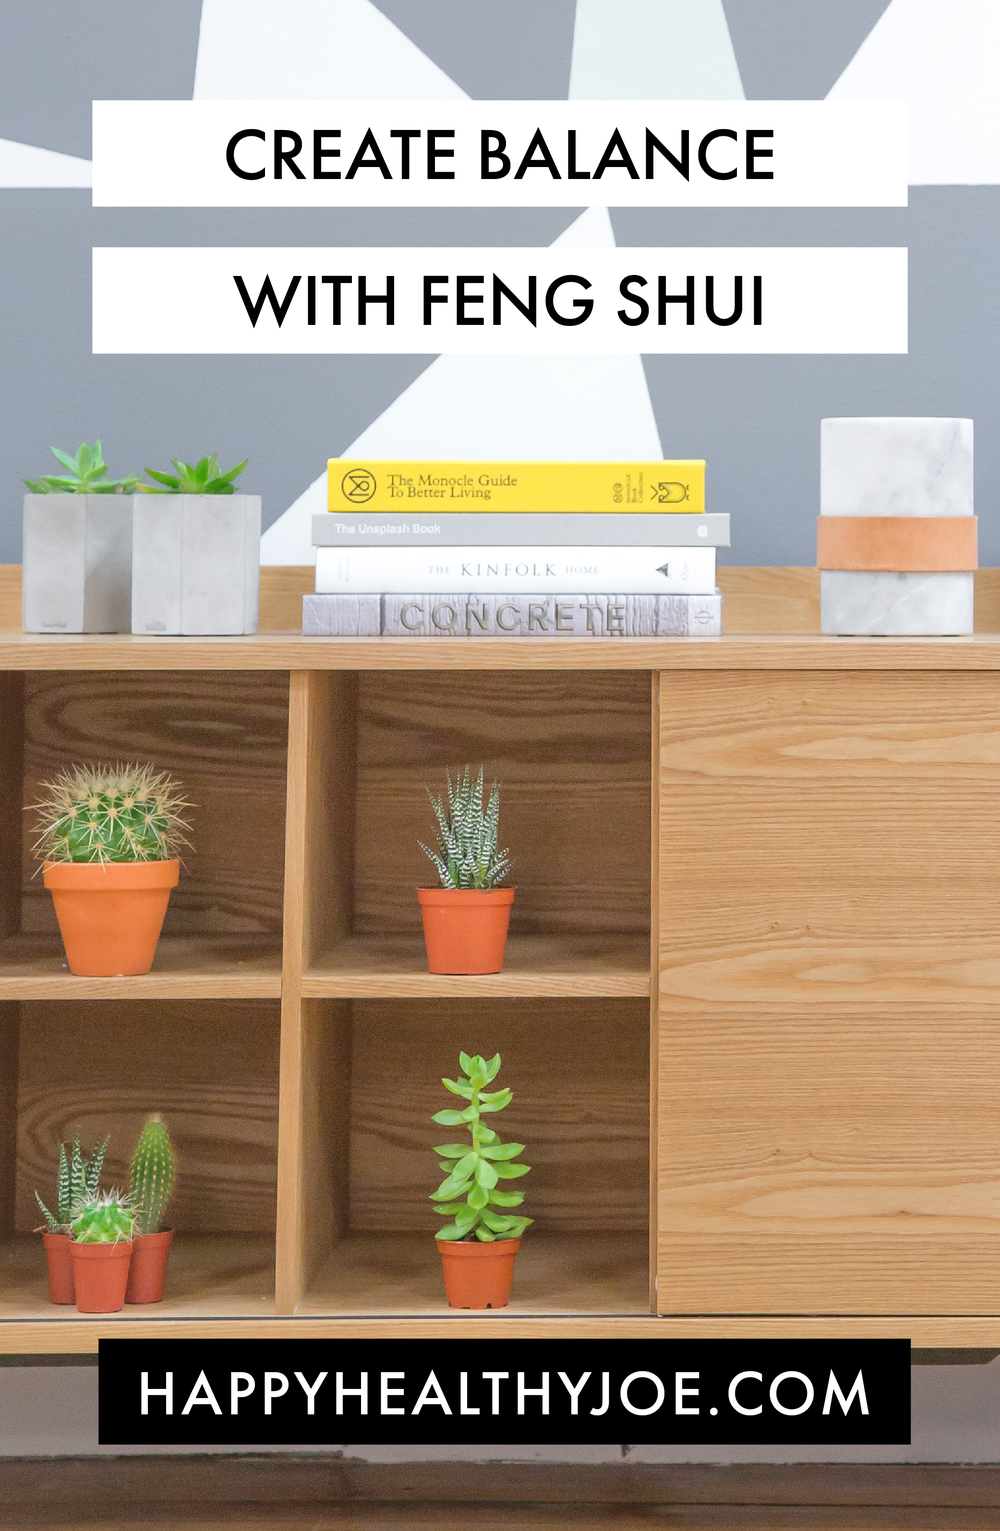 7 Ways to Create Balance With Feng Shui Happy Healthy Joe